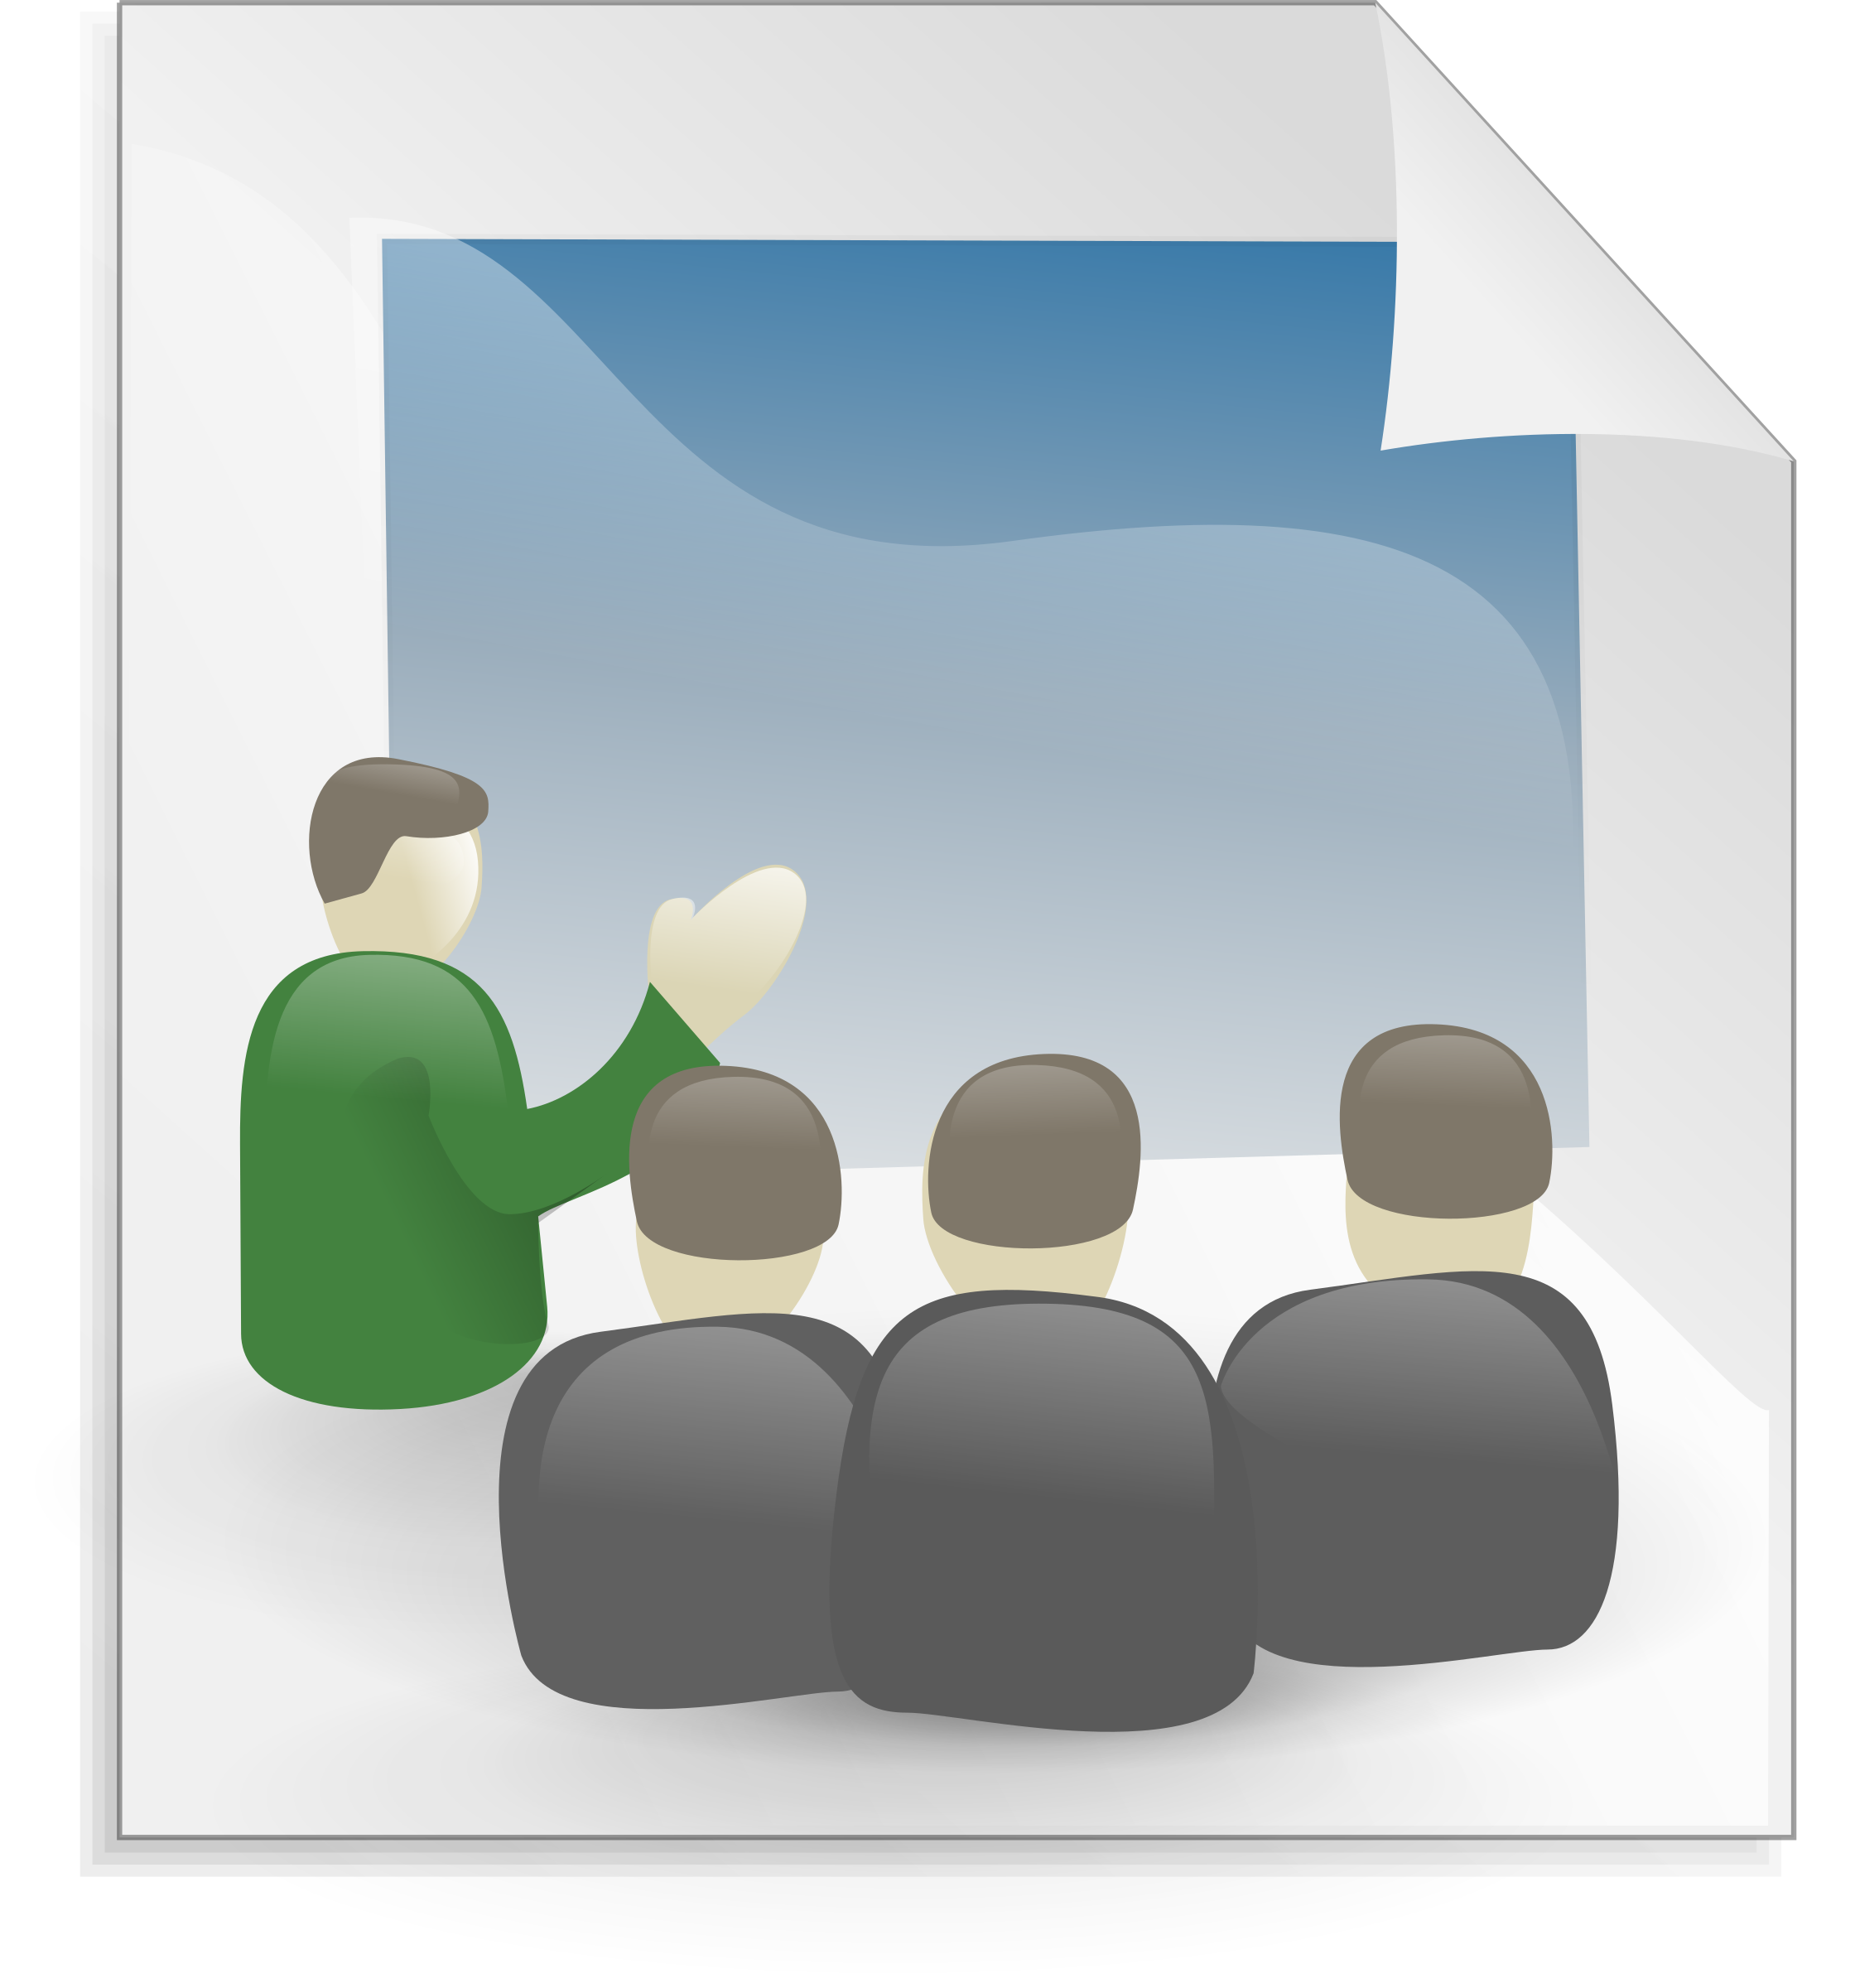 Presentation png transparent images. Conference clipart metting